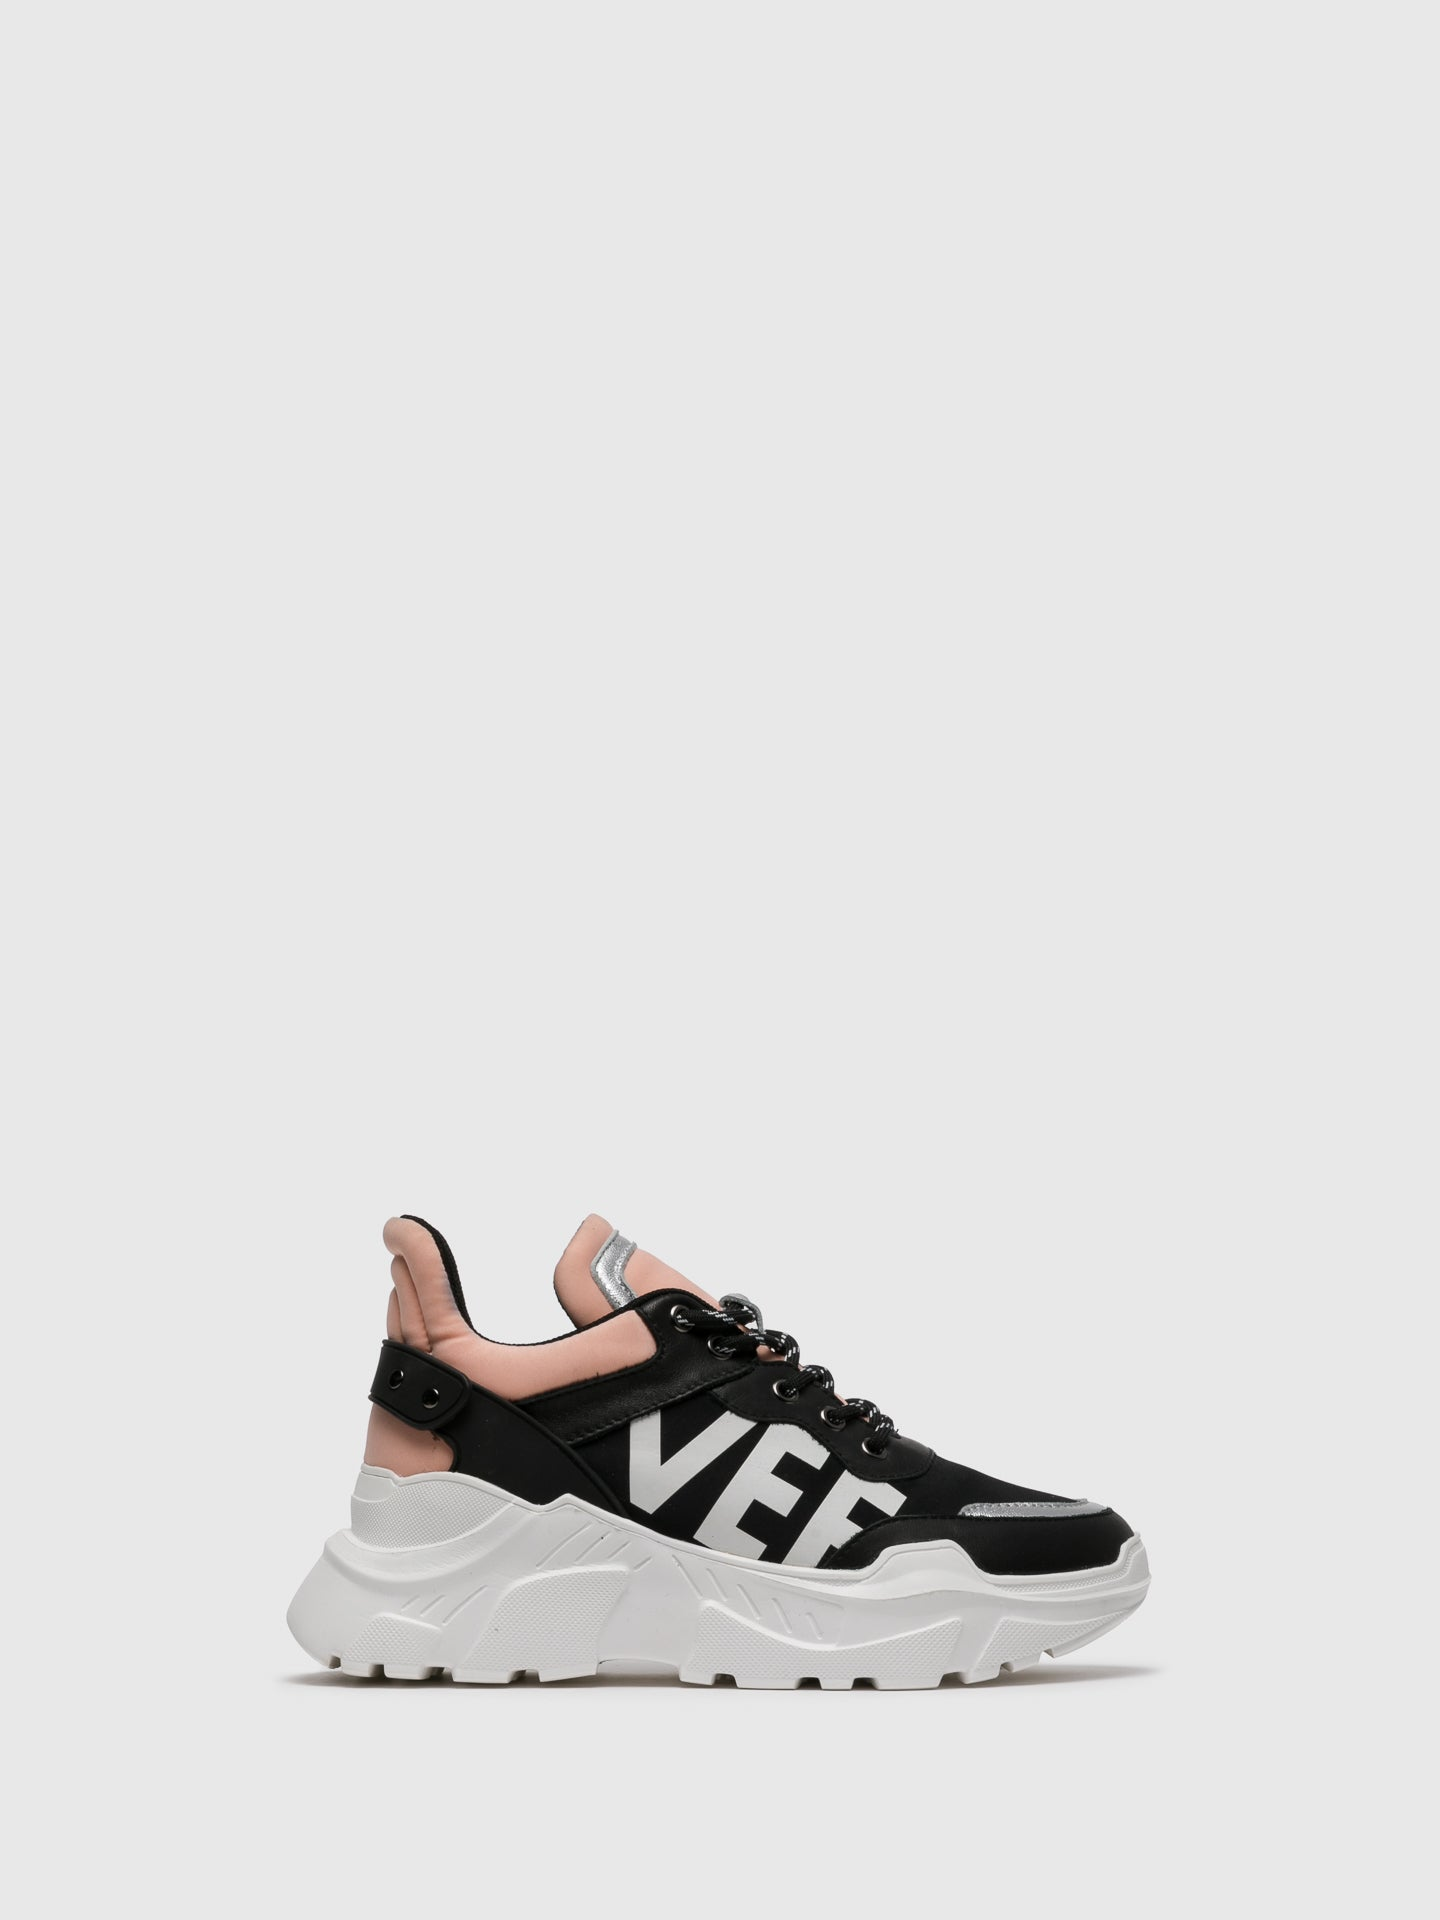 EMANUÉLLE VEE Pink Black Lace-up Trainers